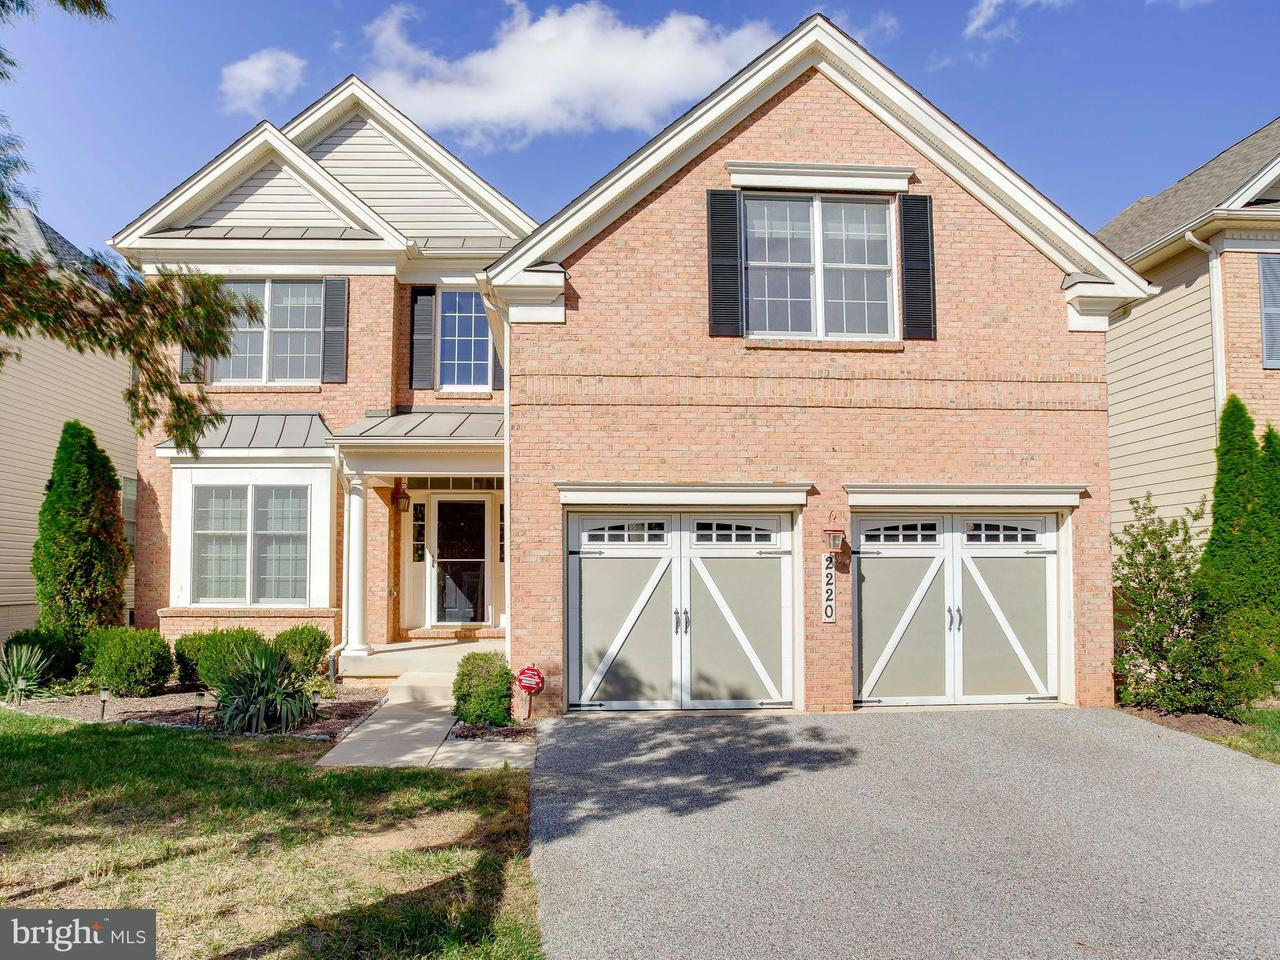 Single Family Home for Sale at 2220 Hollowoak Drive 2220 Hollowoak Drive Hanover, Maryland 21076 United States